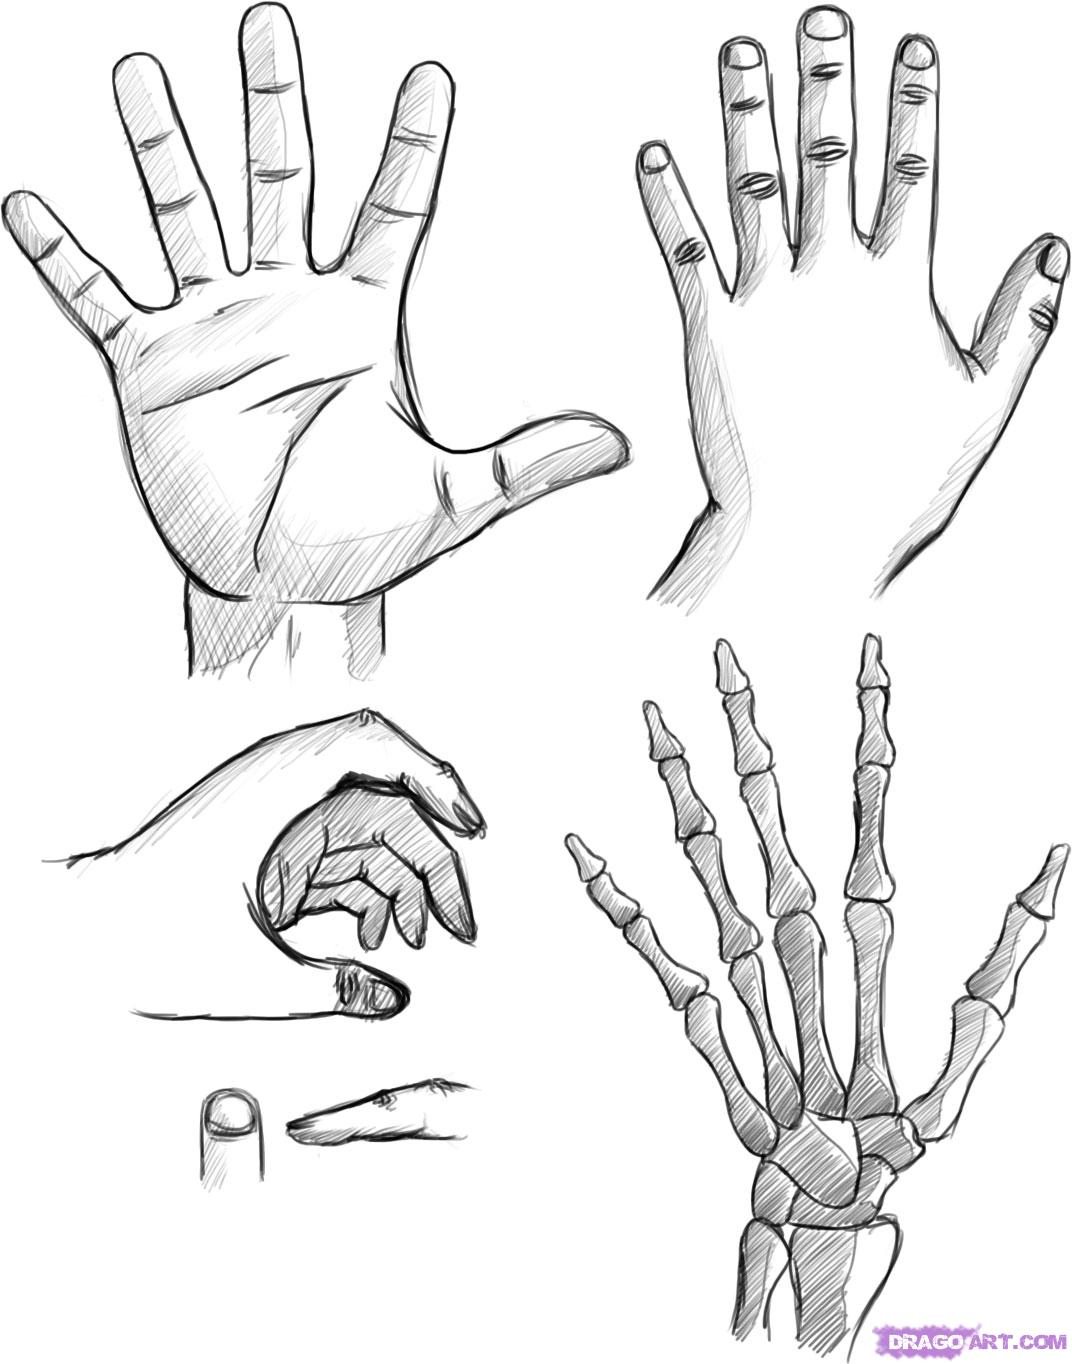 1072x1364 How To Draw Hands, Step By Step, Hands, People, Free Online